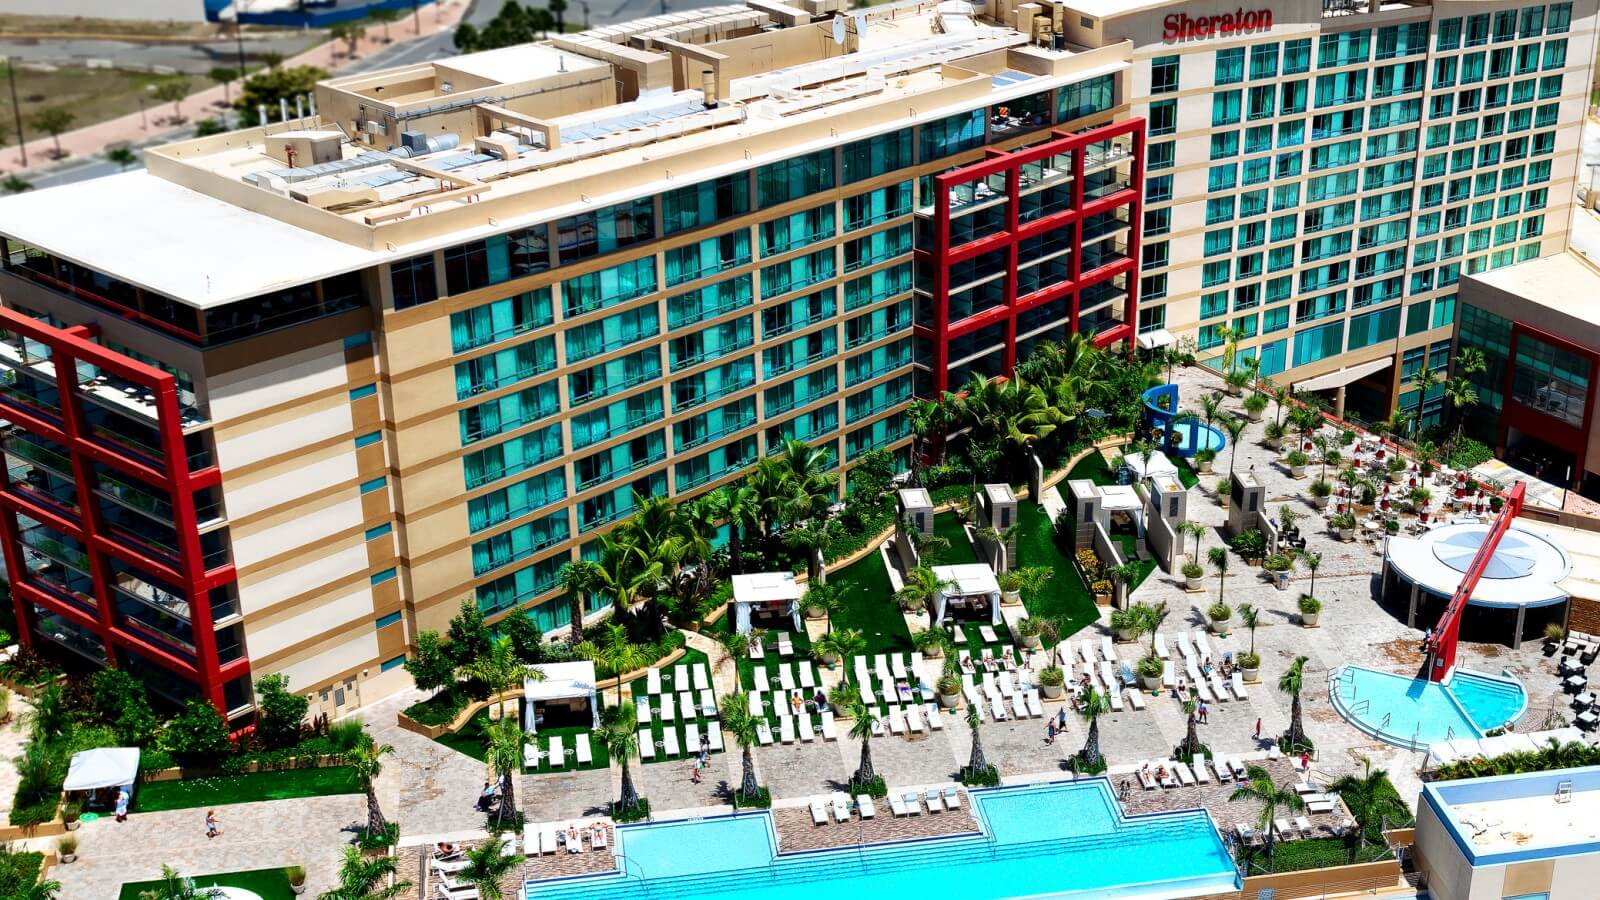 Sheraton Puerto Rico Hotel & Casino - Honeymoons